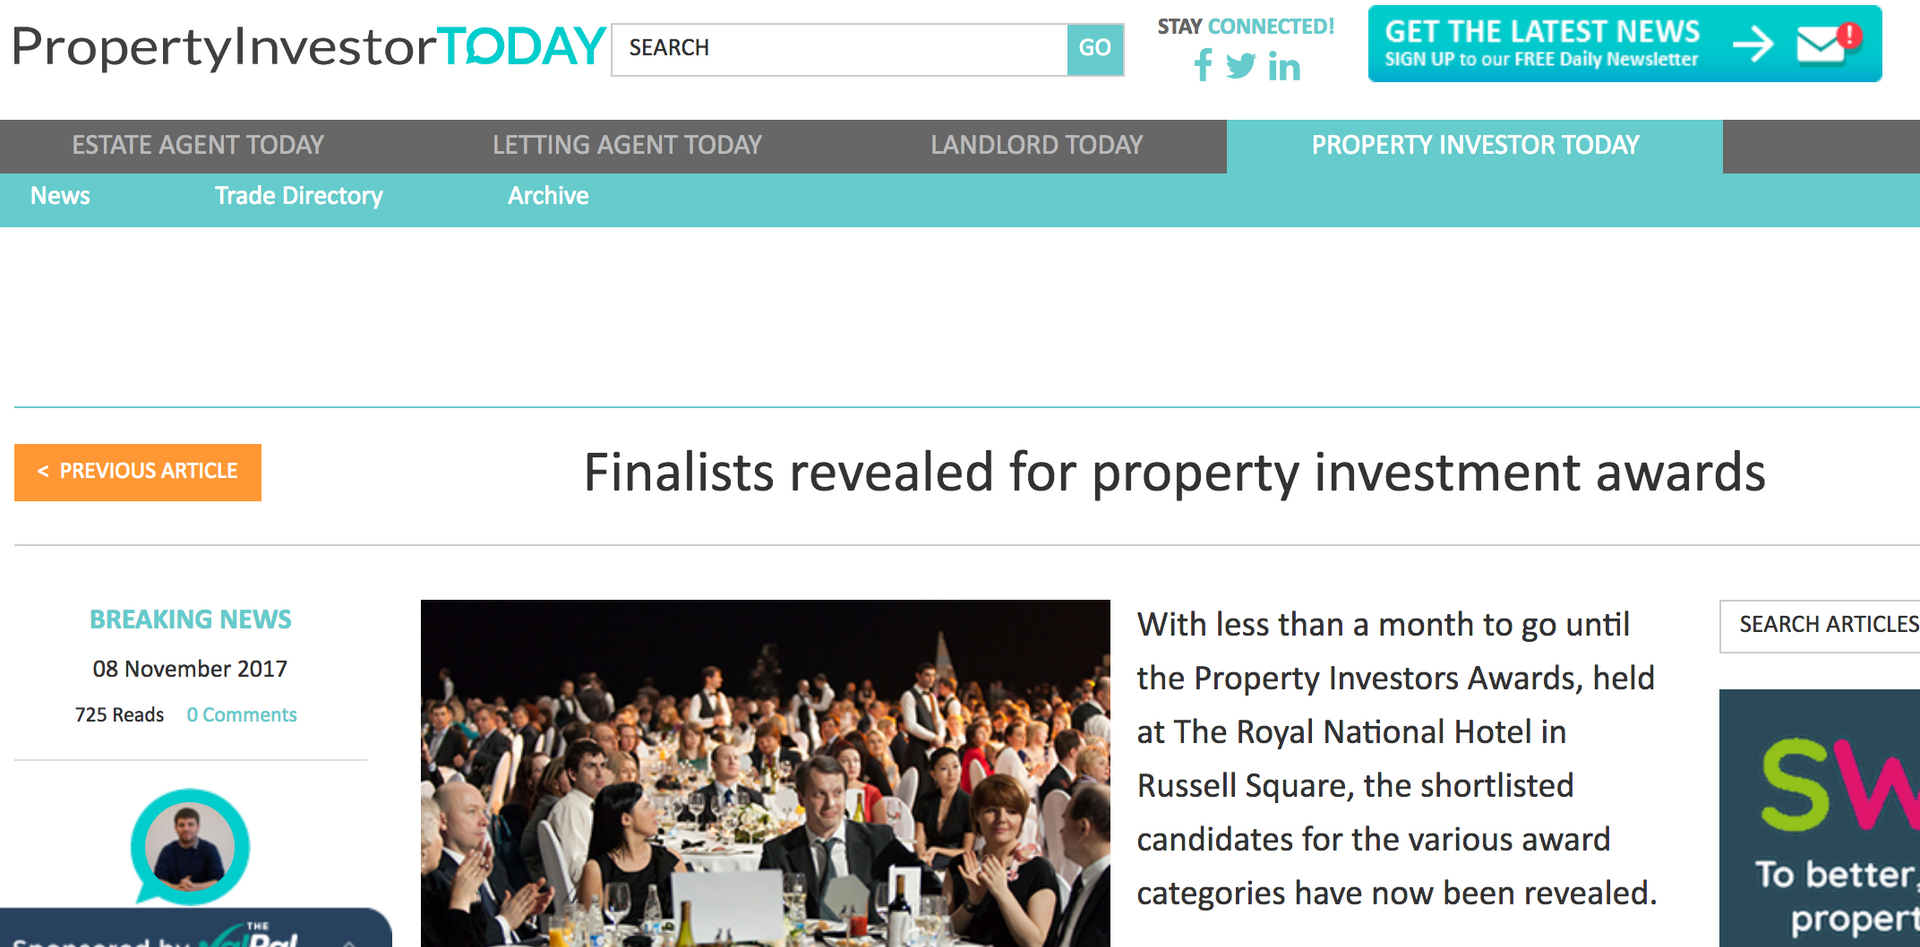 Property Investor Today - Finalists Revealed